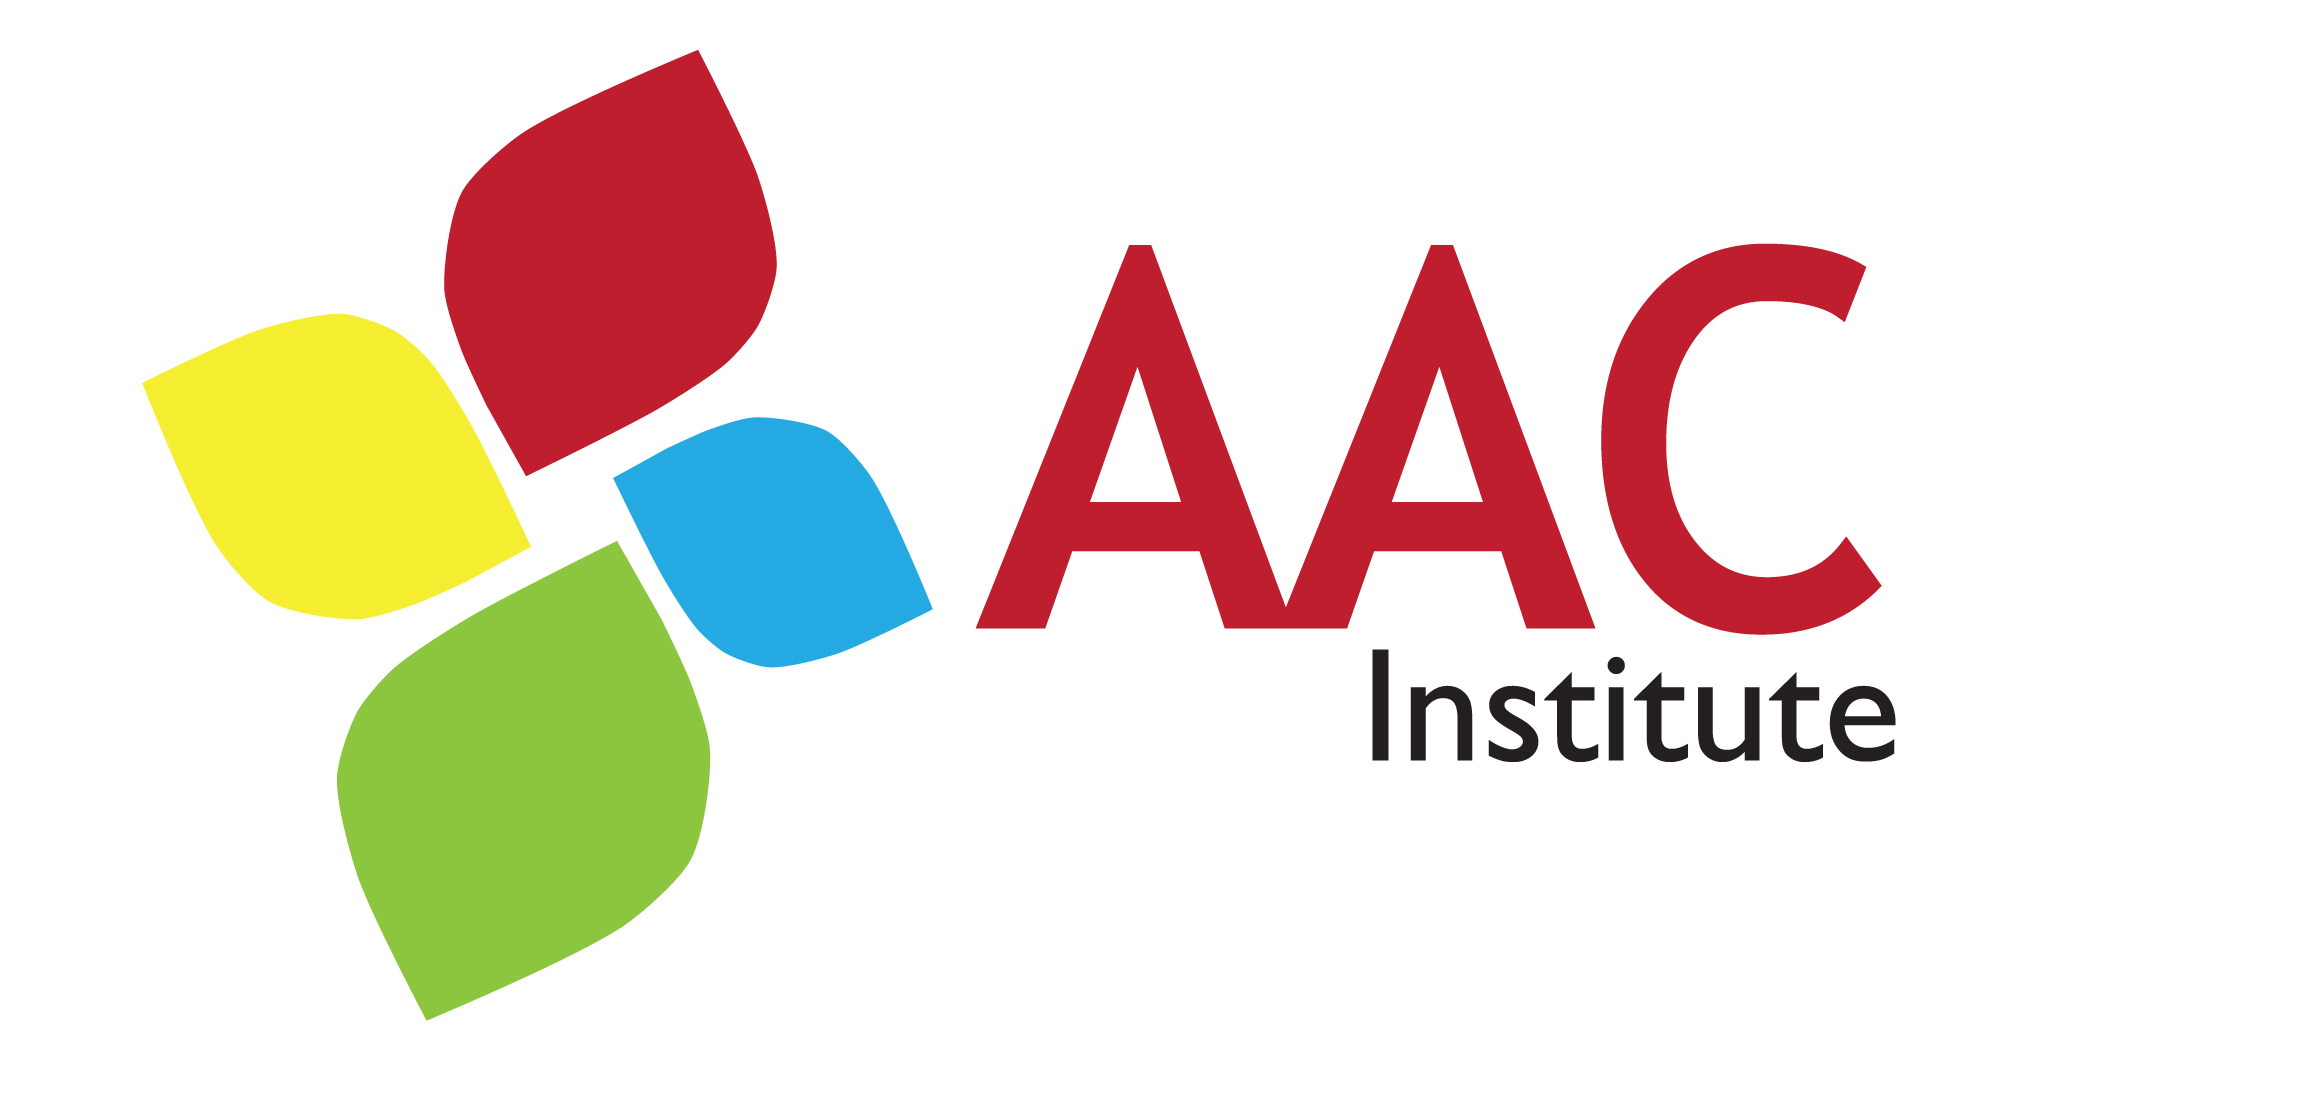 Co-presented by the Alternative and Augmentative Institute